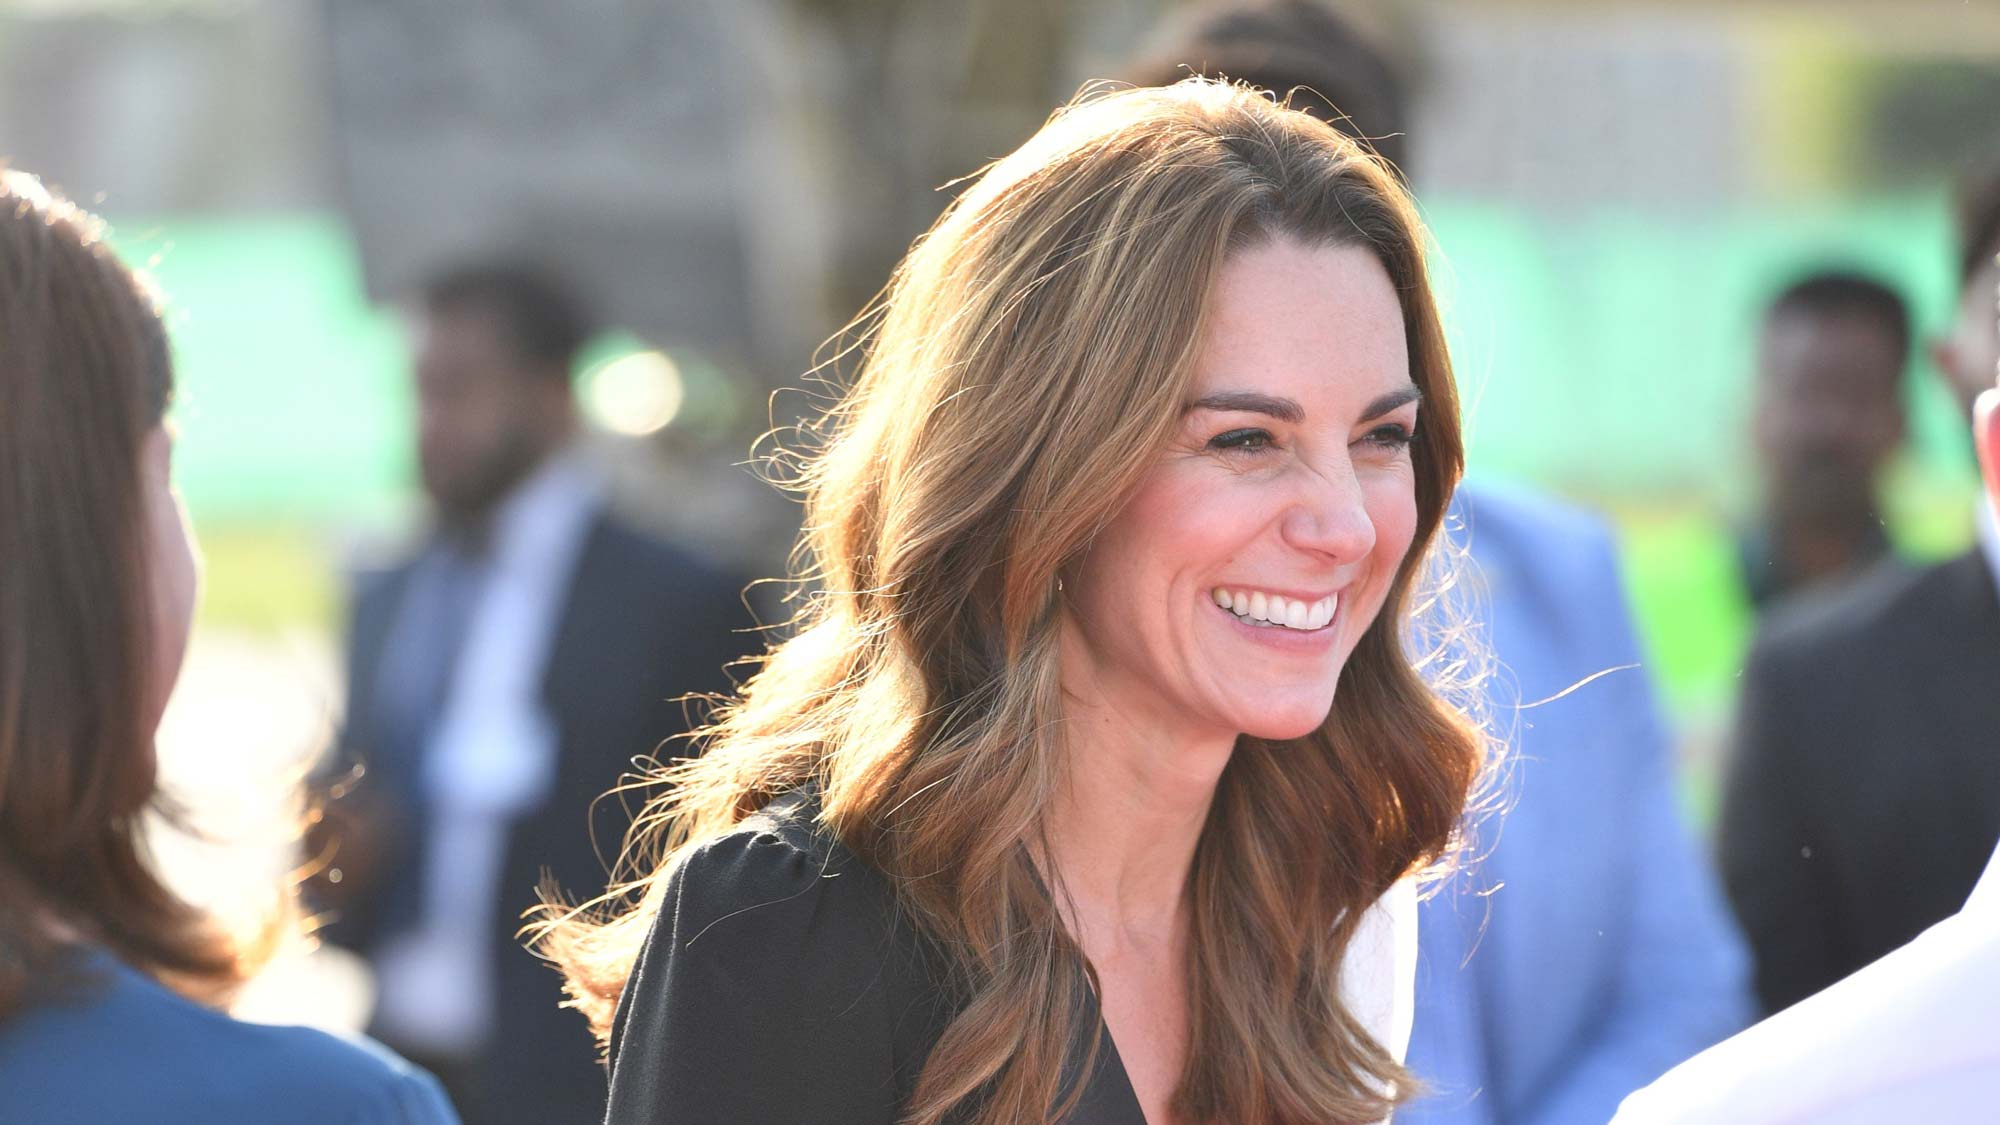 Did you spot Kate Middleton's first ever Instagram post?